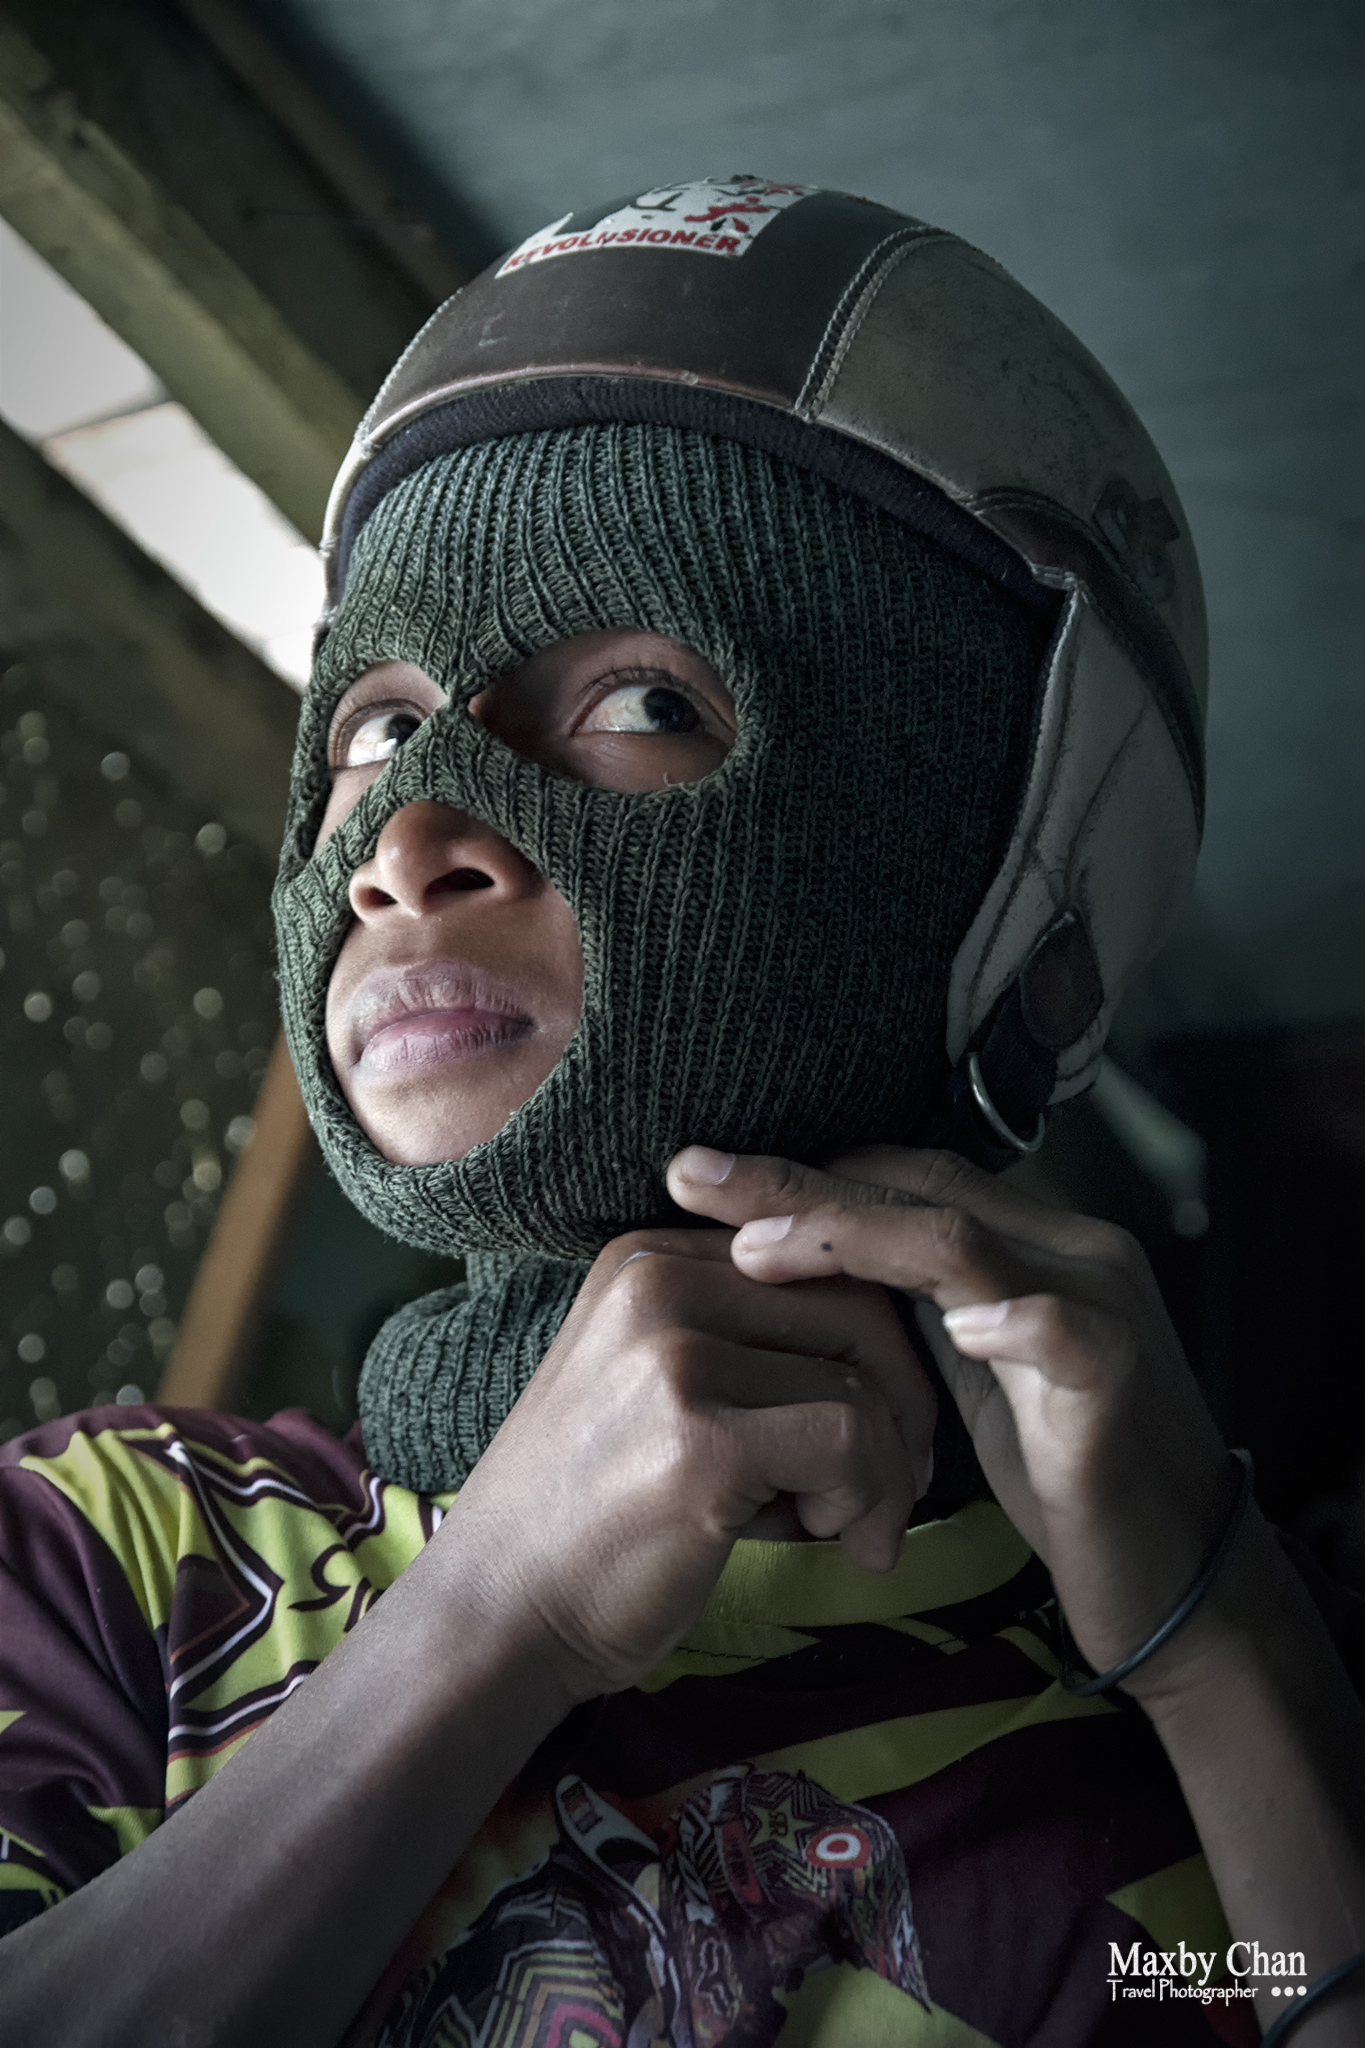 A hood and a helmet is all the protective gear that he is wearing